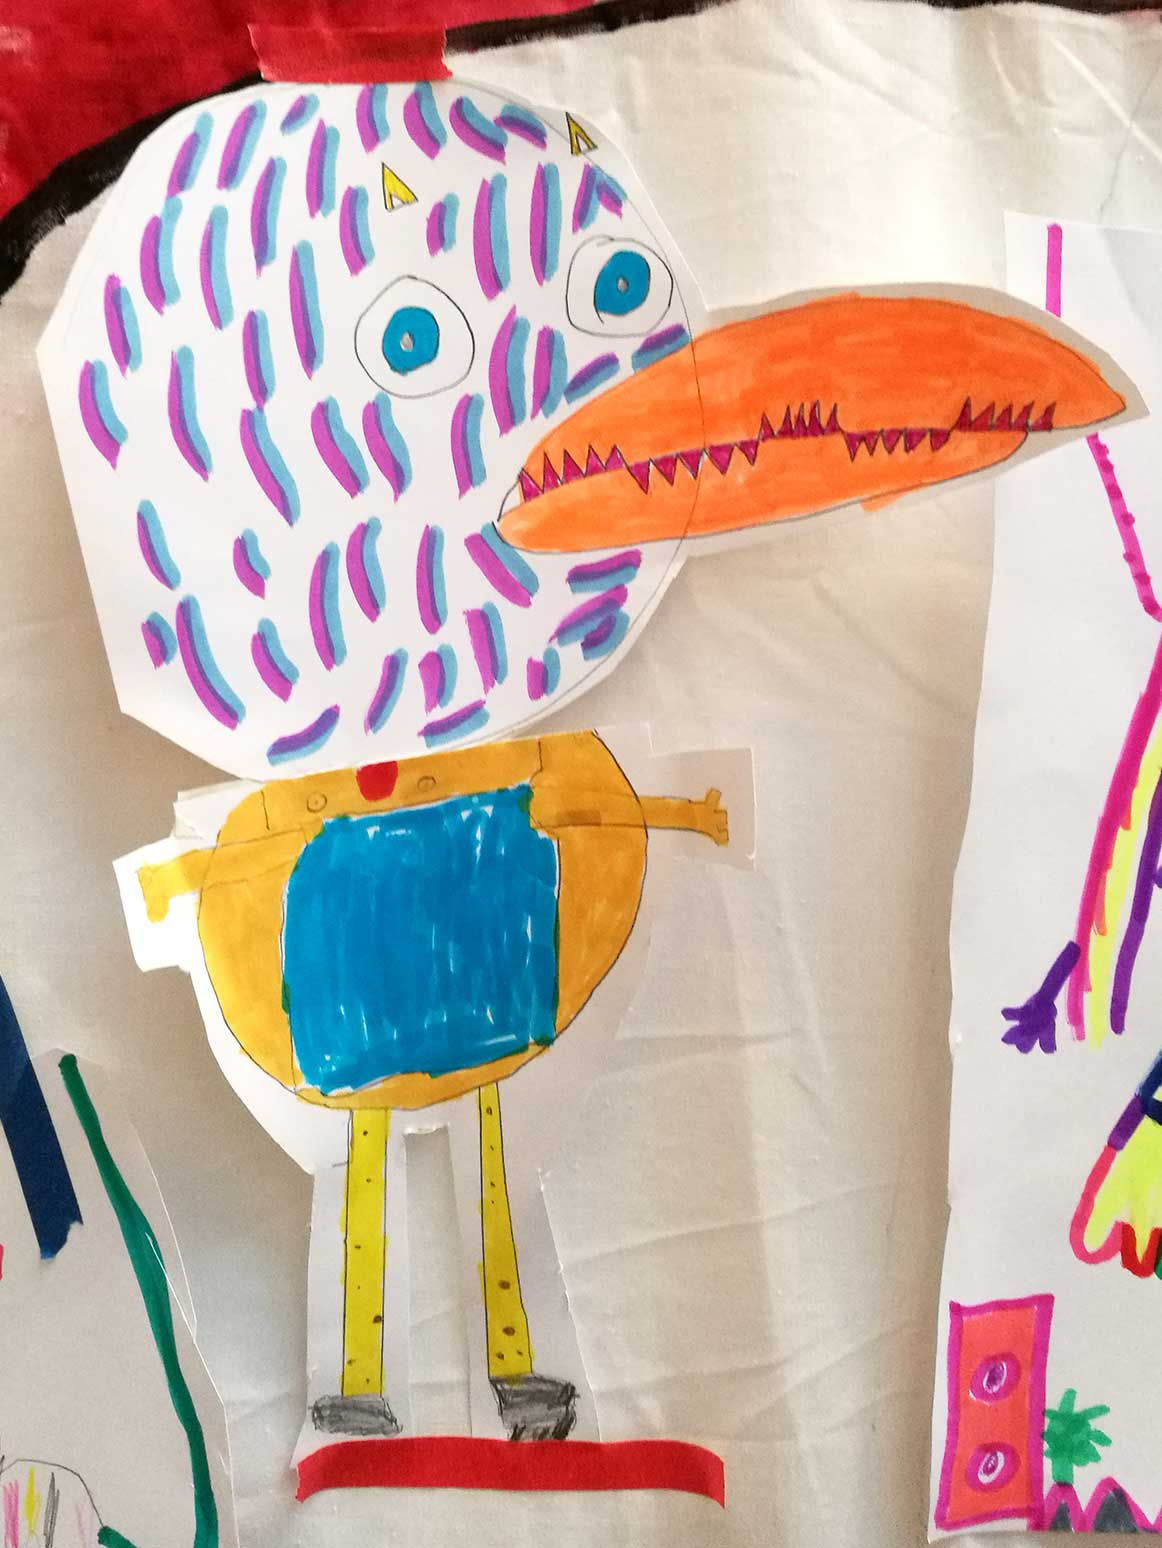 Some of the characters created by kids for the illustration workshops